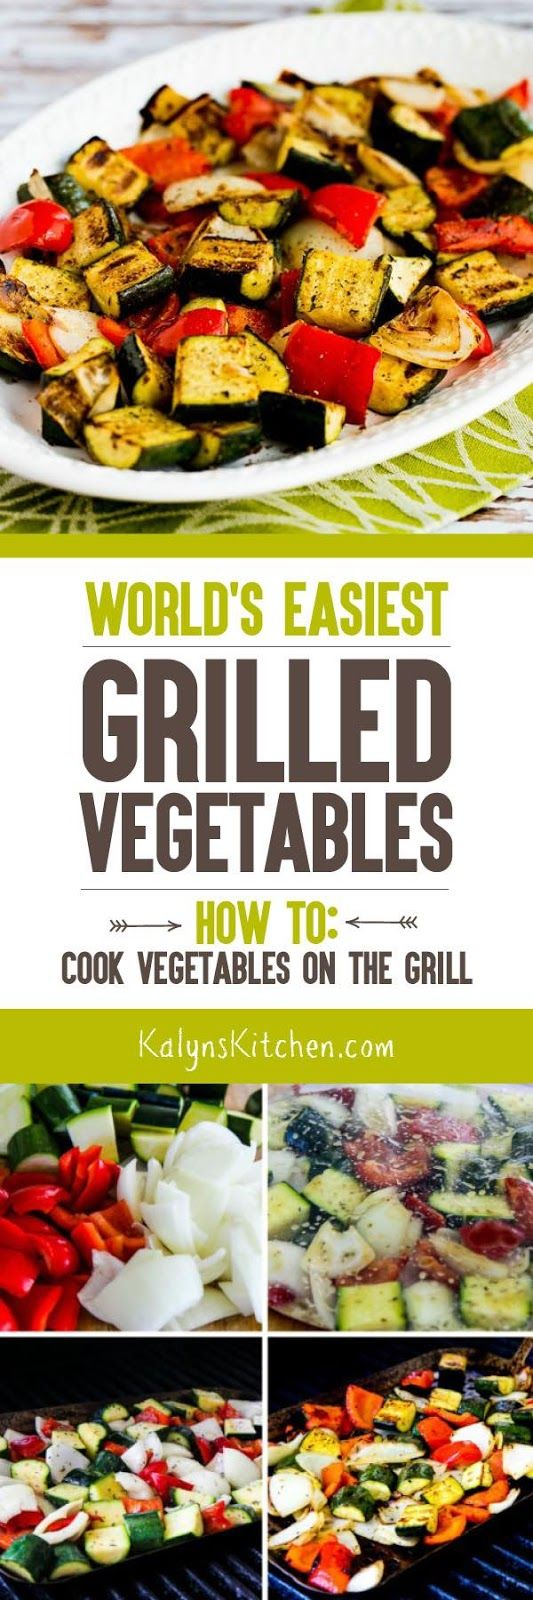 You'll love this easy, easy recipe for the World's Easiest Grilled Vegetables (plus step-by-step instructions for How to Cook Vegetables on the Grill). I make these easy low-carb, gluten-free, Paleo, and South Beach Diet friendly grilled vegetables all su